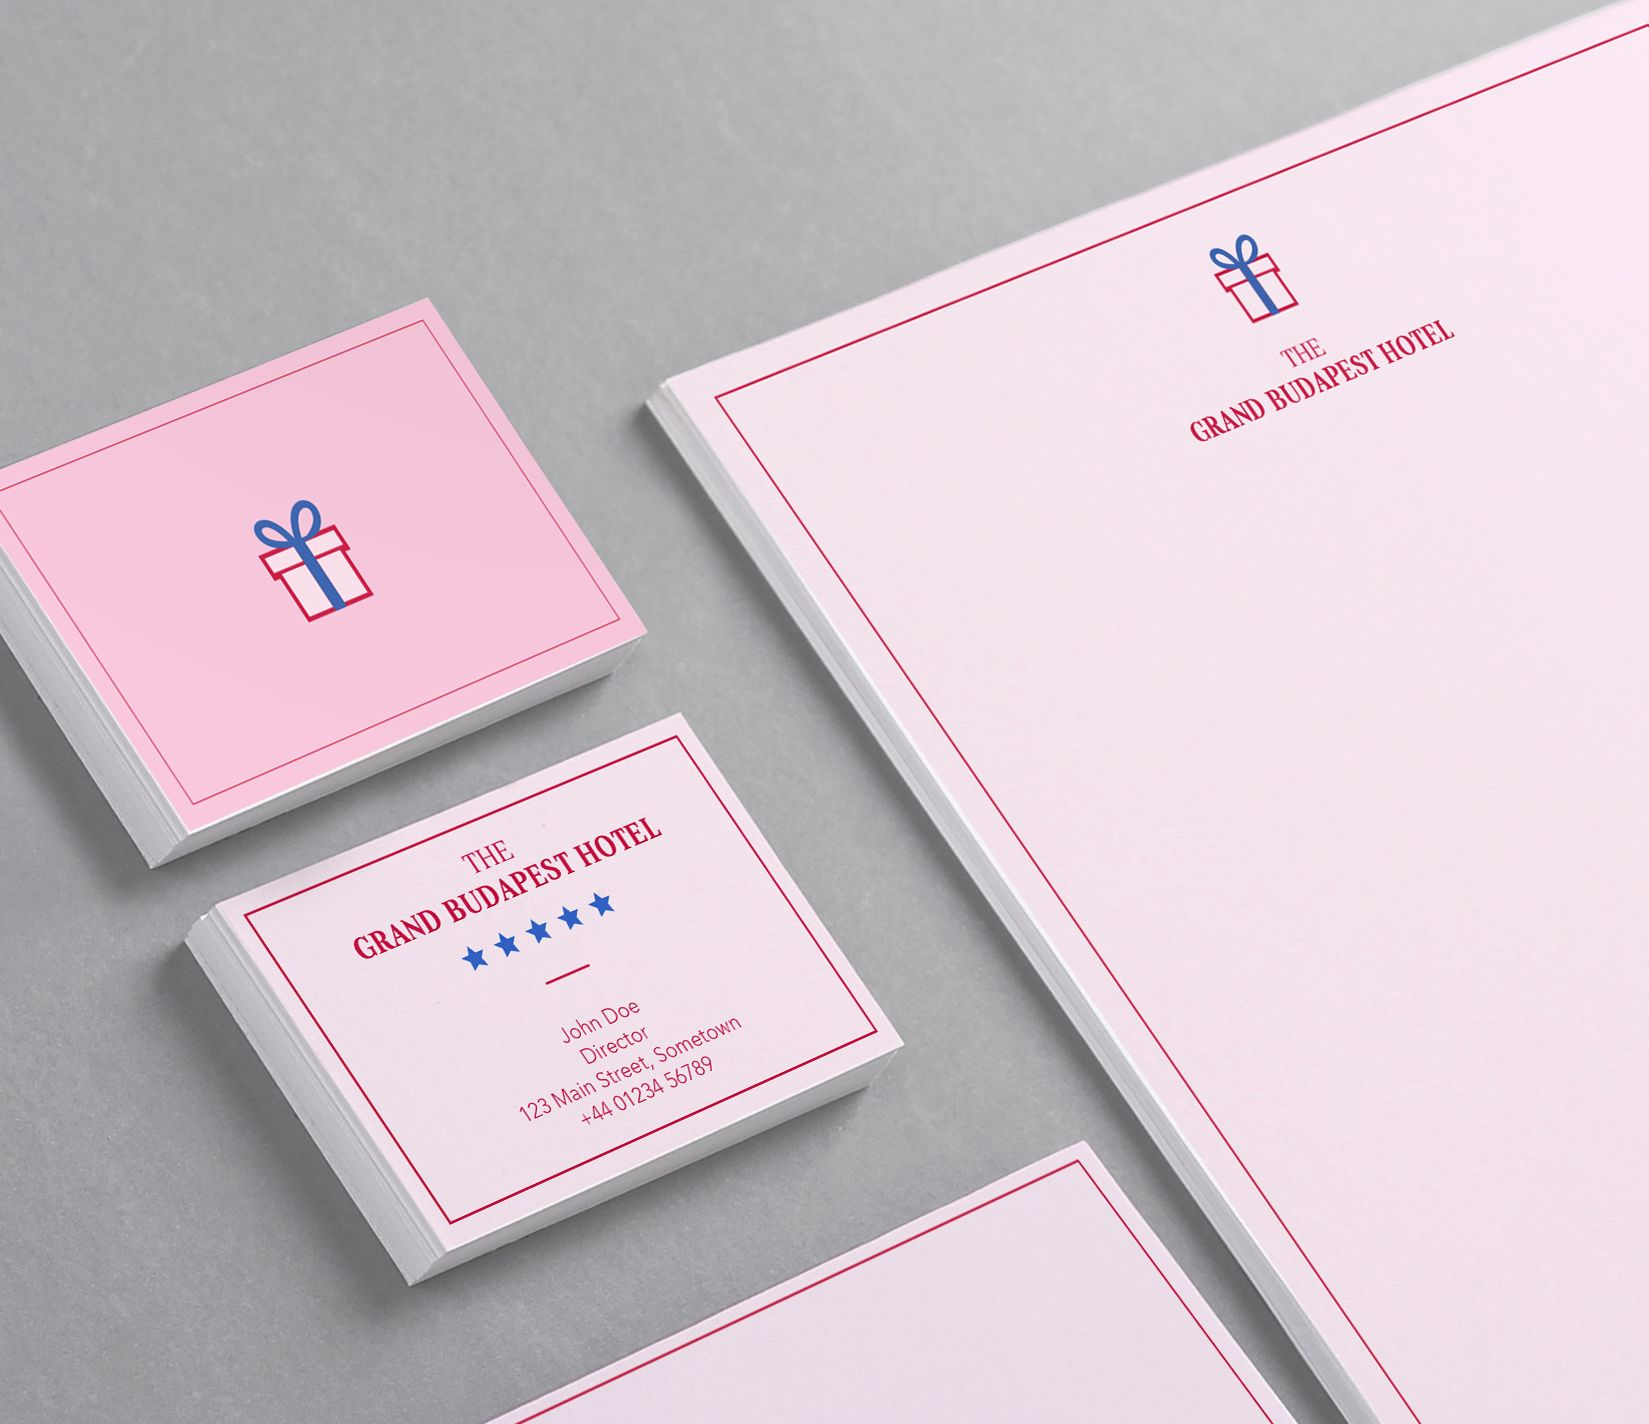 Inspired design stationery inspired by the grand budapest hotel inspired design stationery inspired by the grand budapest hotel goodprint ltd reheart Images